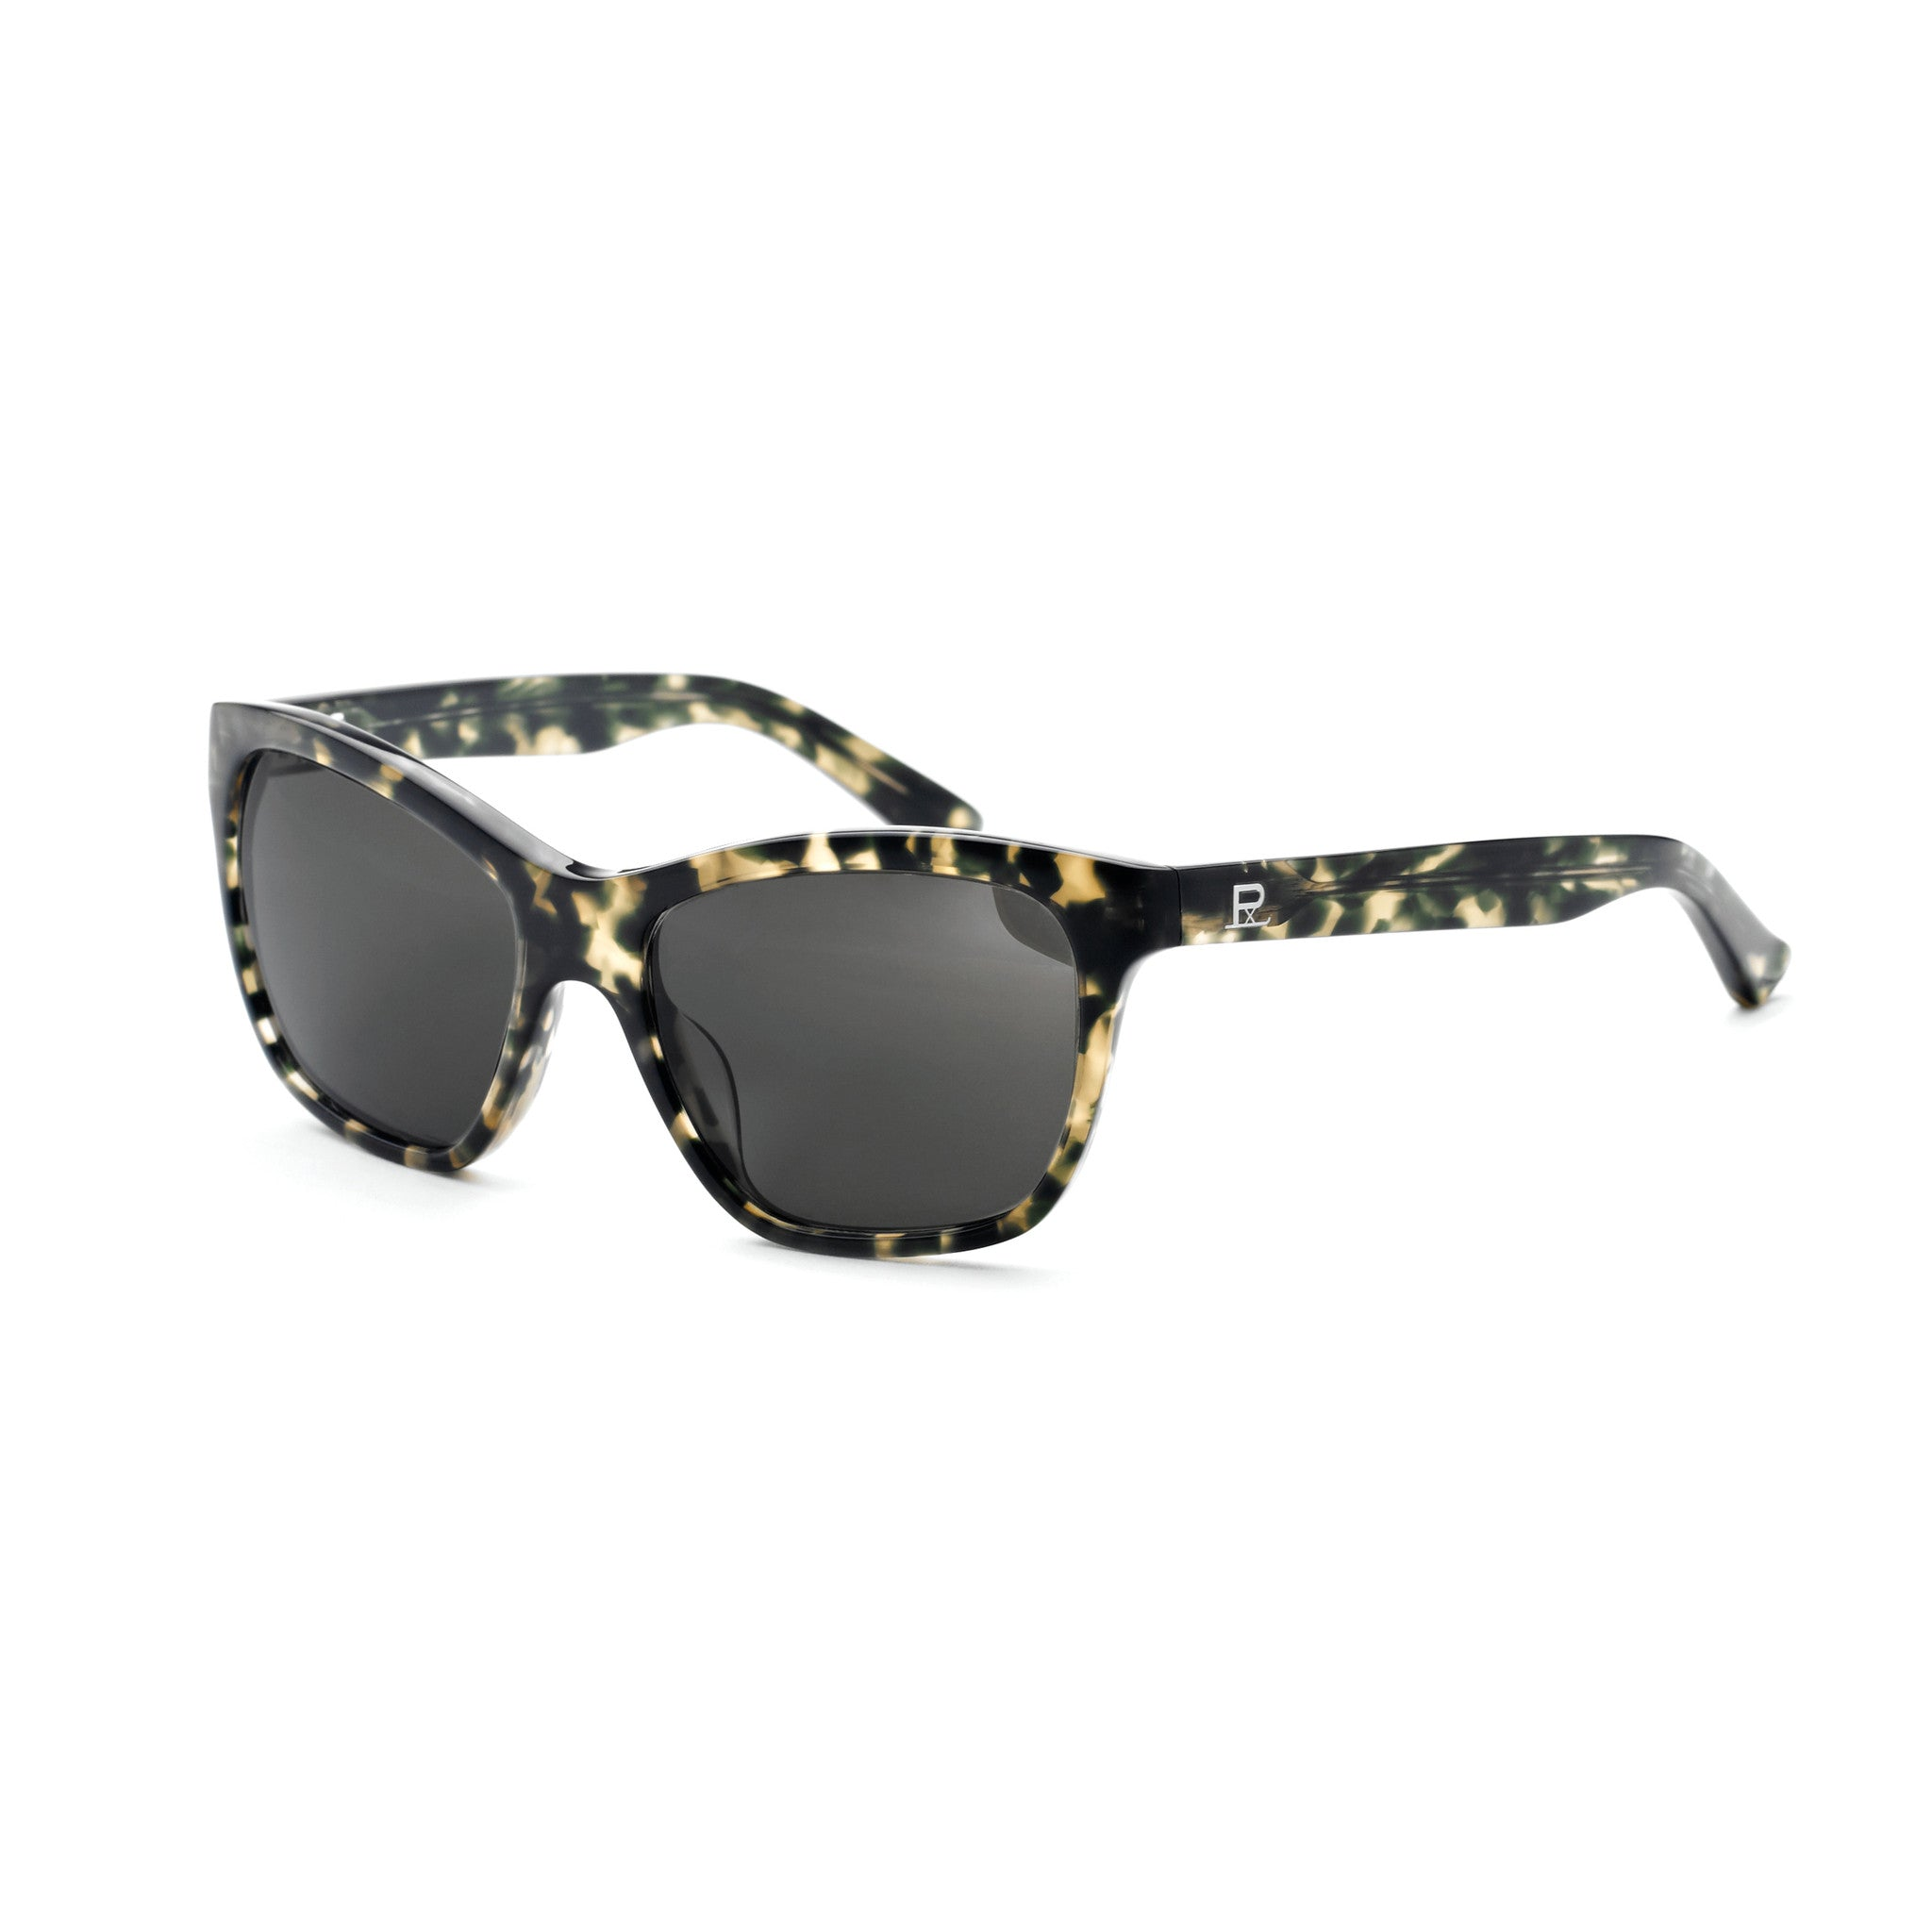 SURFER - Tortoise Grey - Sunglasses 1